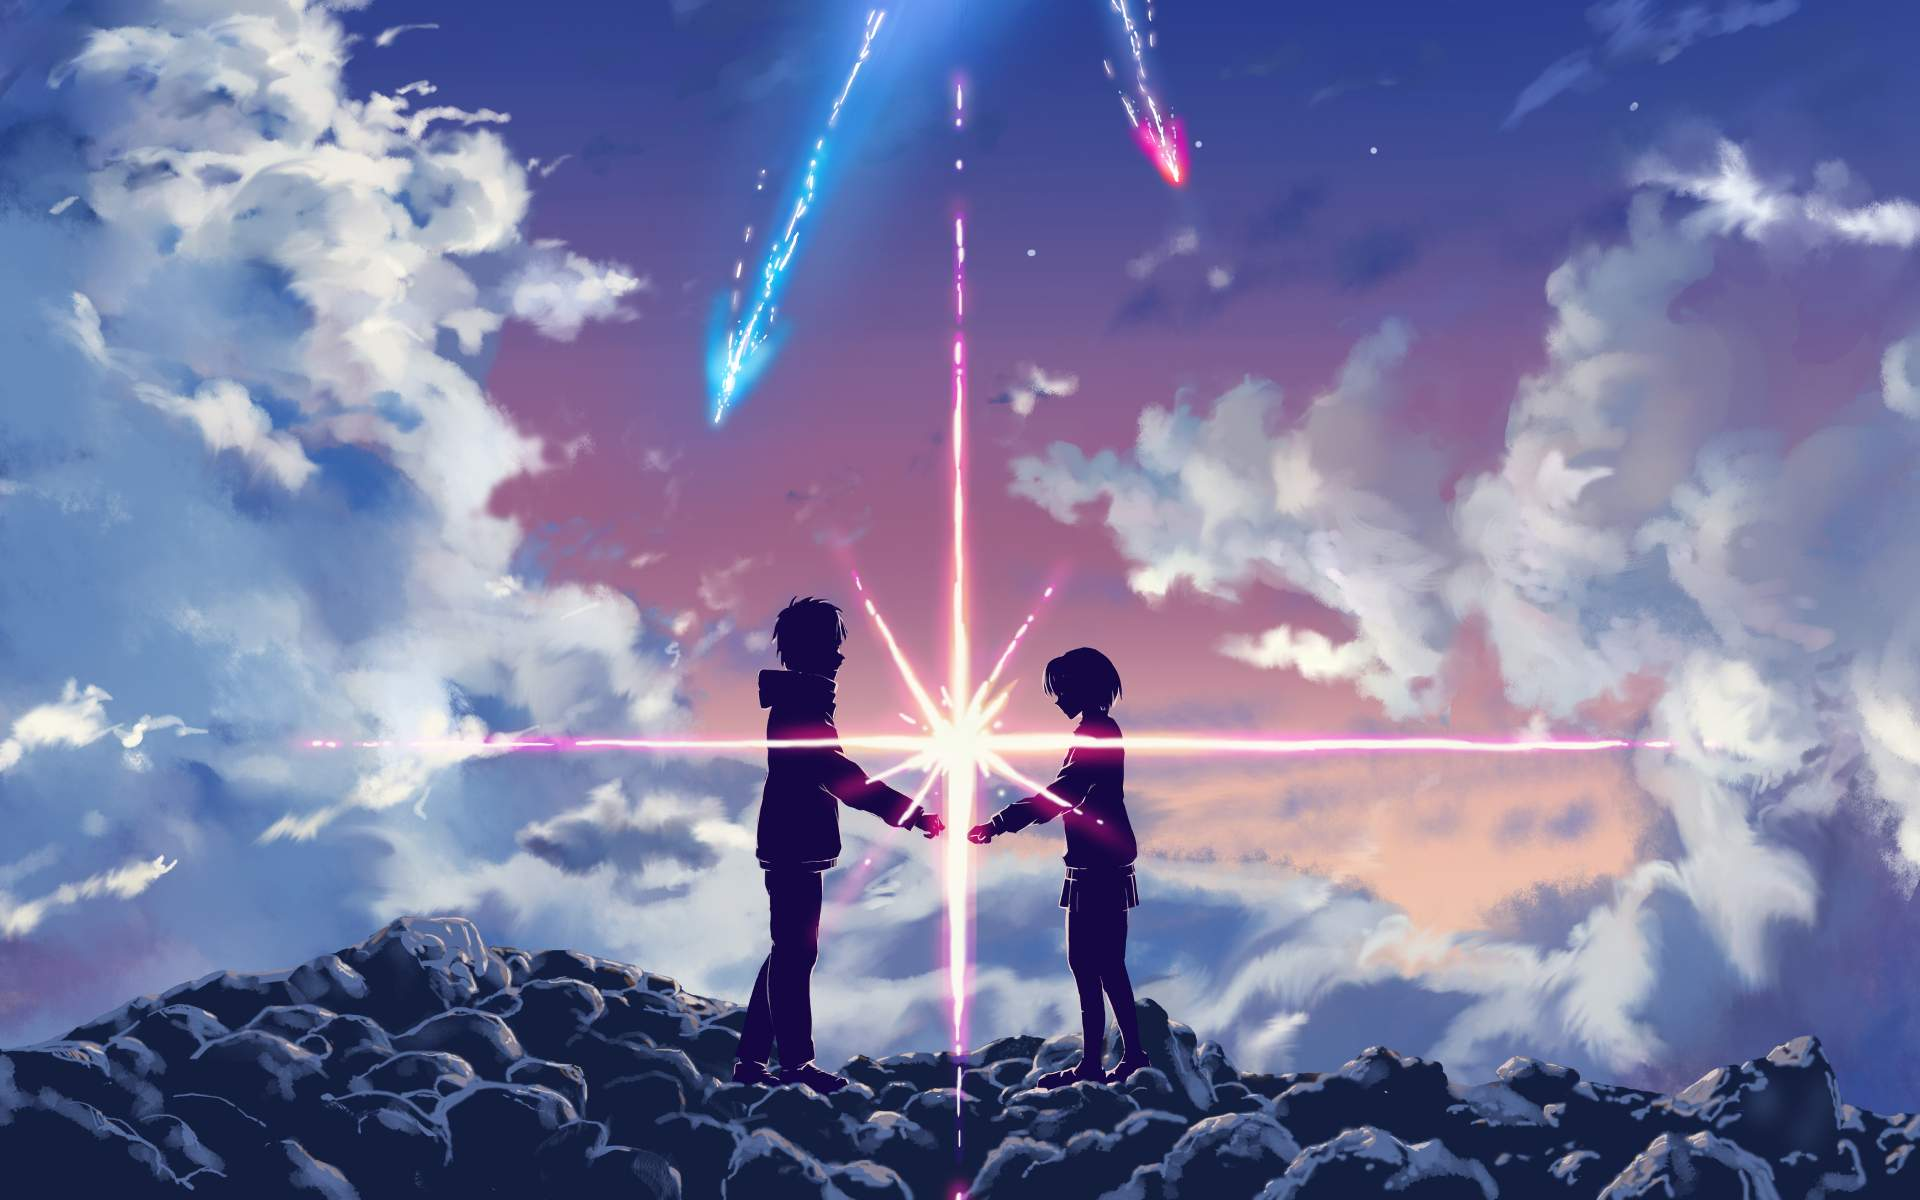 Love Anime Wallpapers Top Free Love Anime Backgrounds Wallpaperaccess